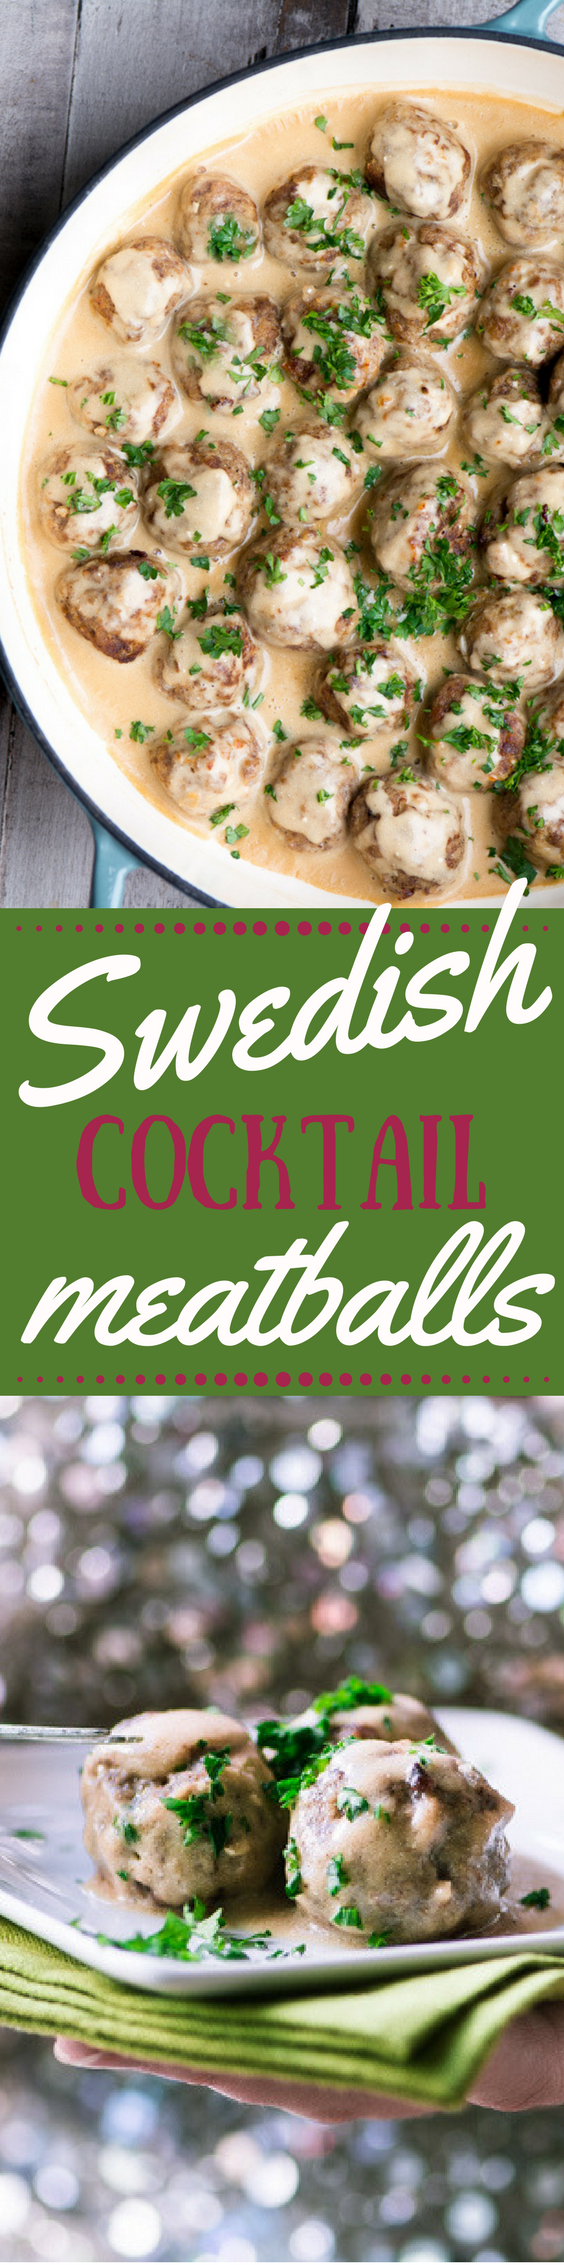 Swedish Cocktail Meatballs pin